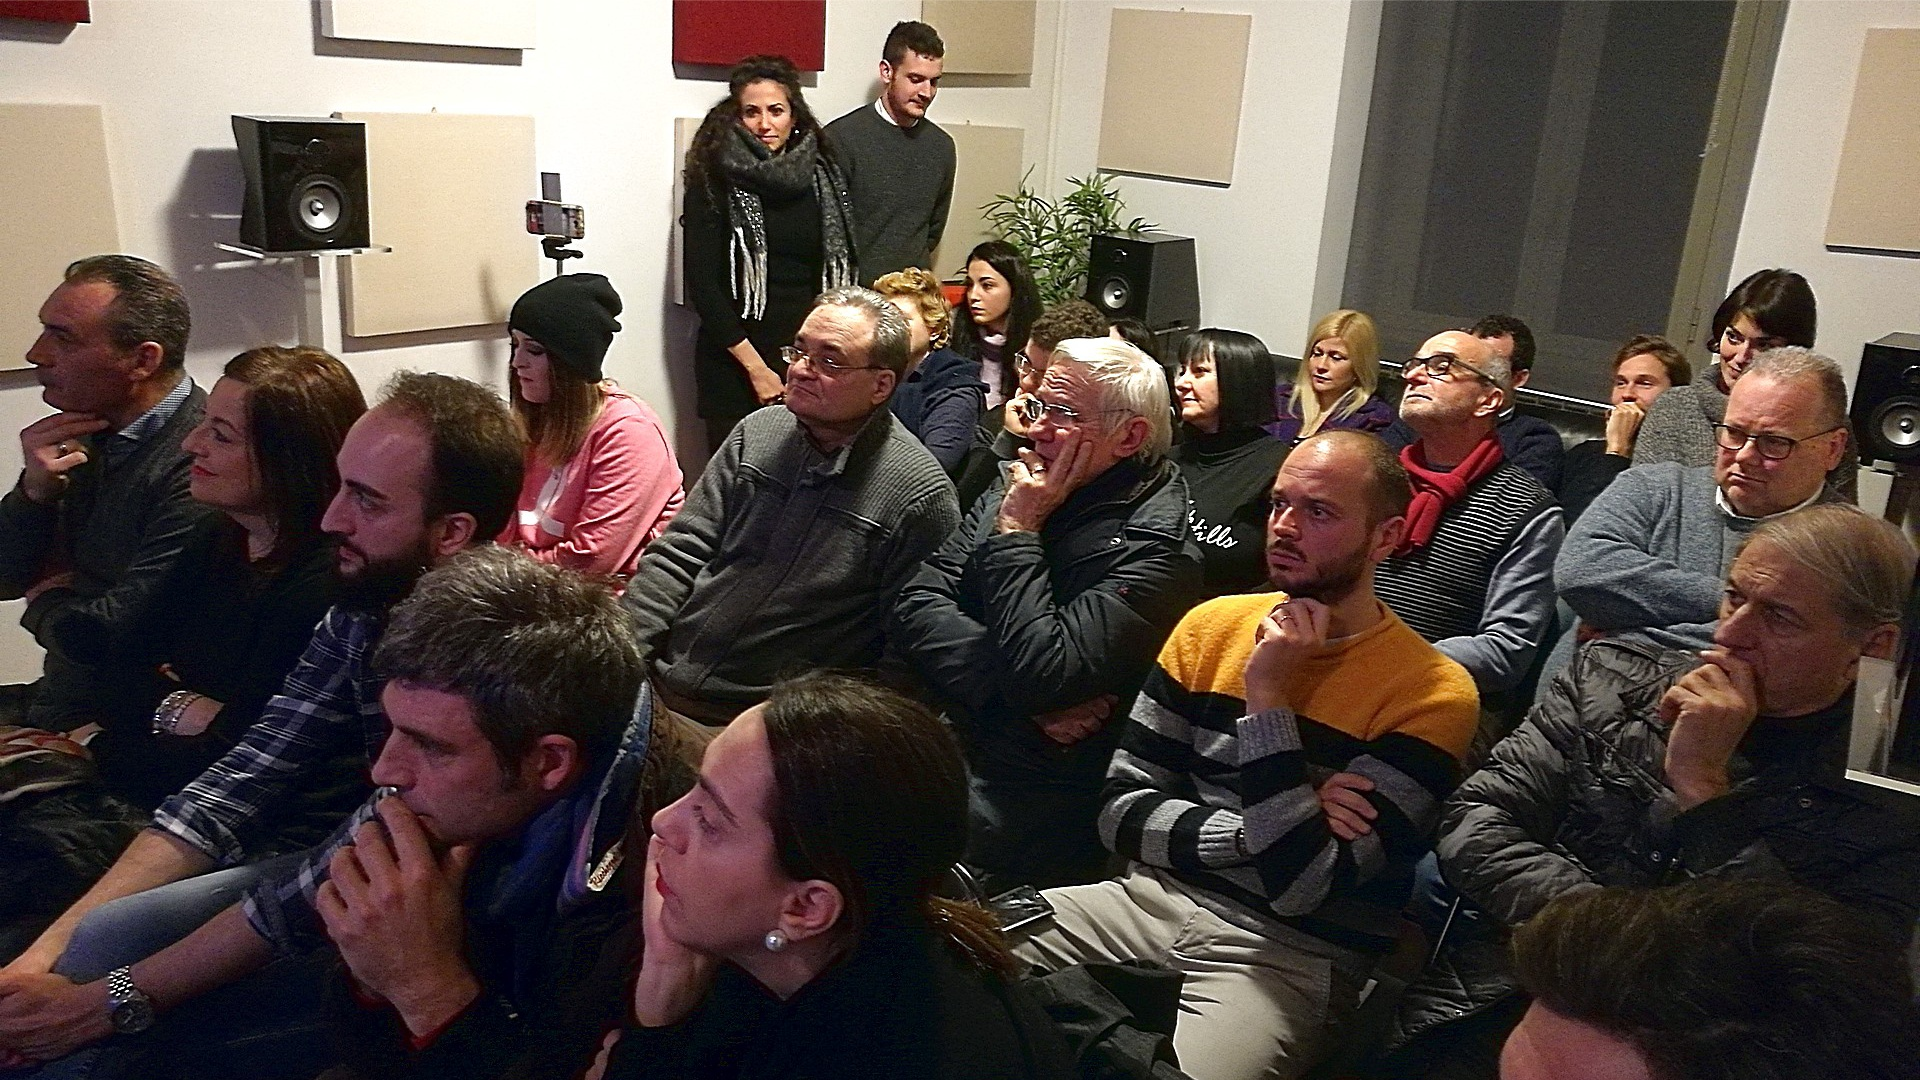 Michele villetti Presentazione The Genius CD  IMG_20190105_181049 mod  1920x1080